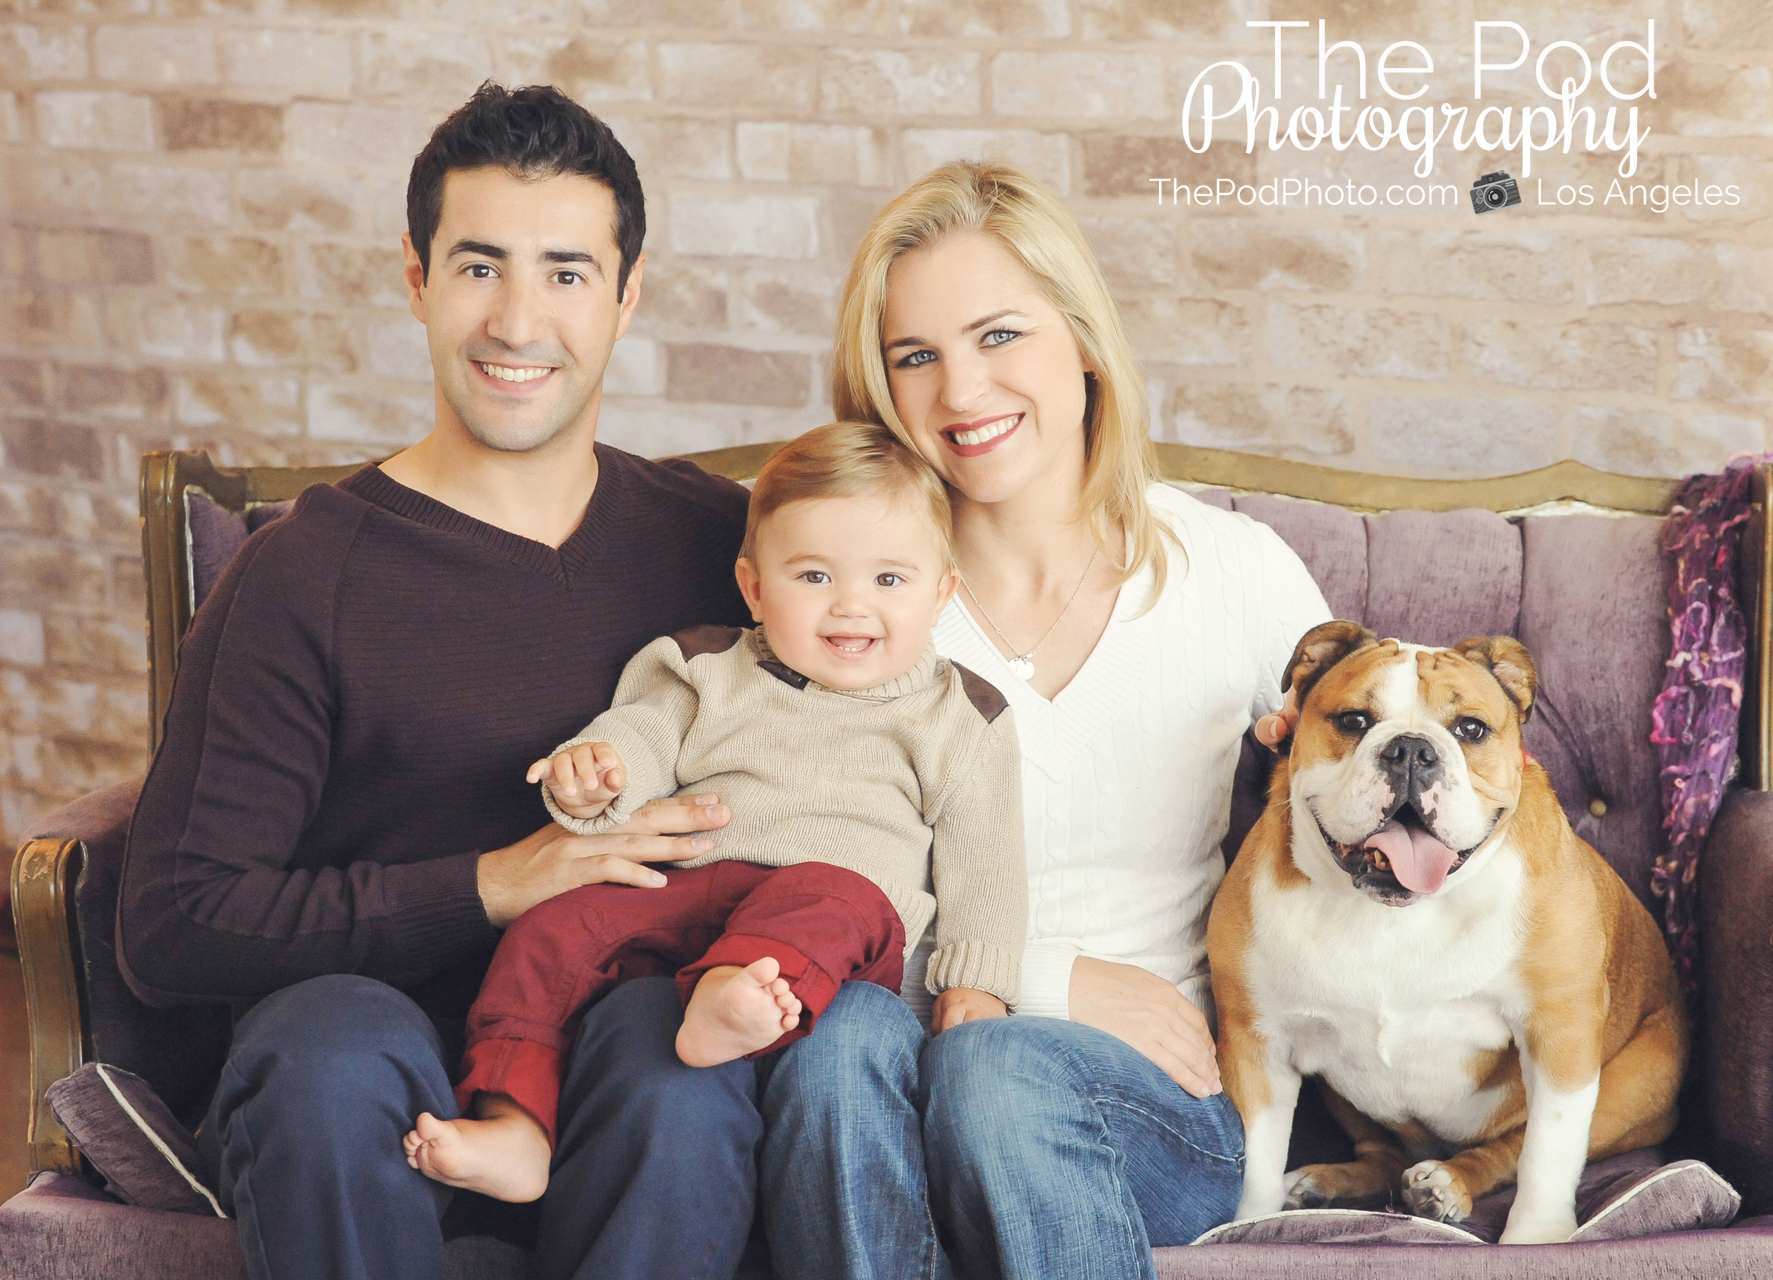 Spring Has Arrived Family Portrait Specials Los Angeles